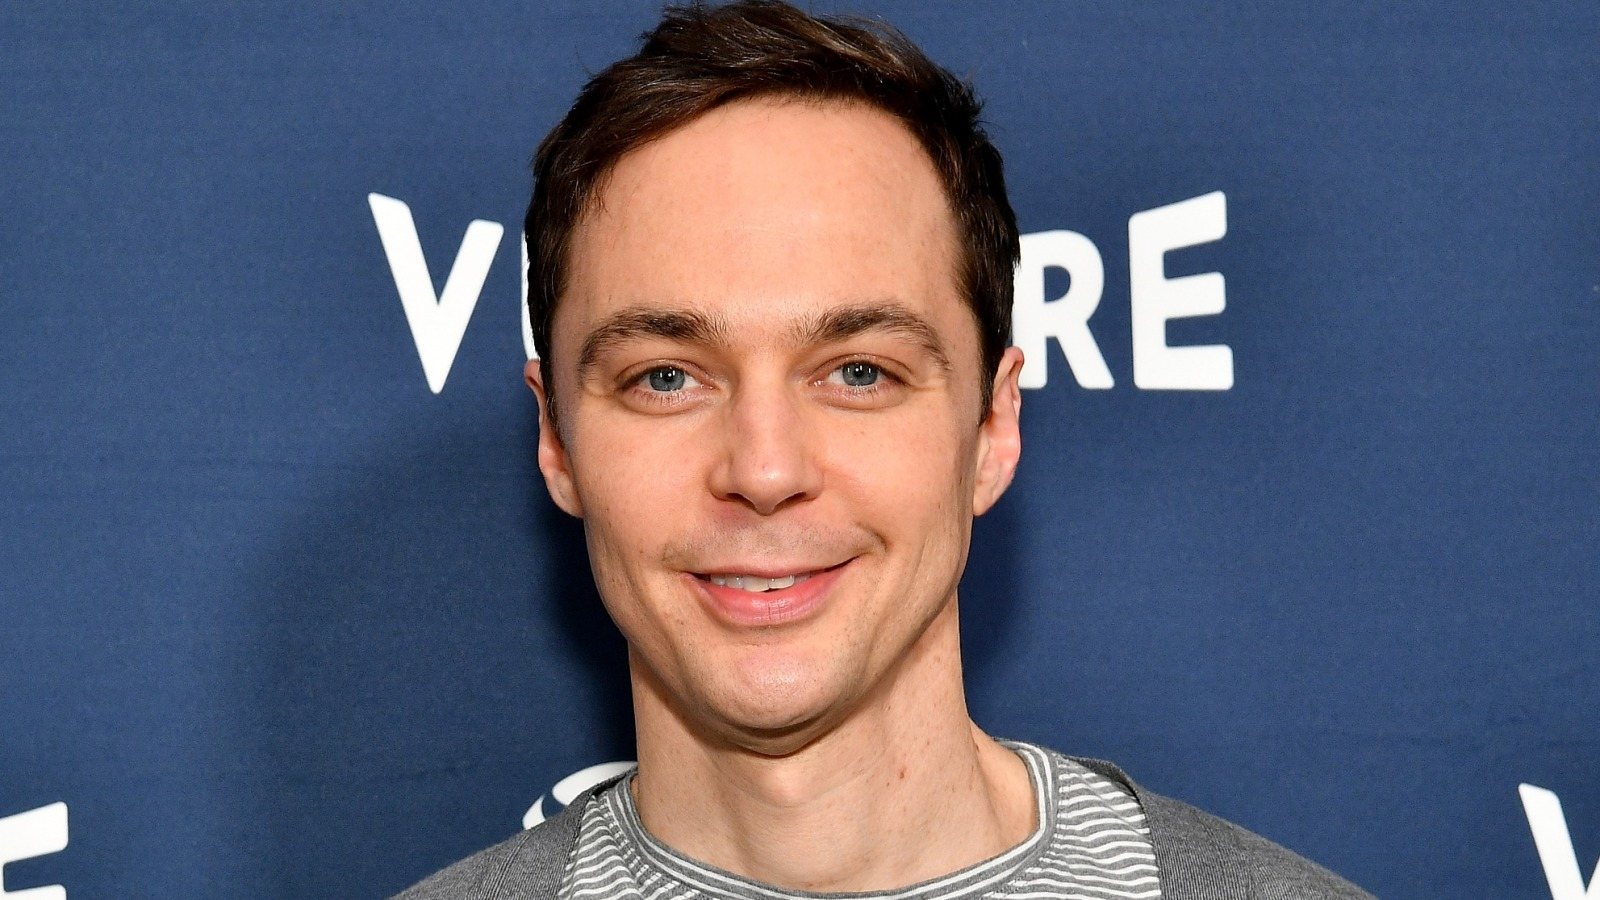 The Big Bang Theory's Jim Parsons came out The low-key way